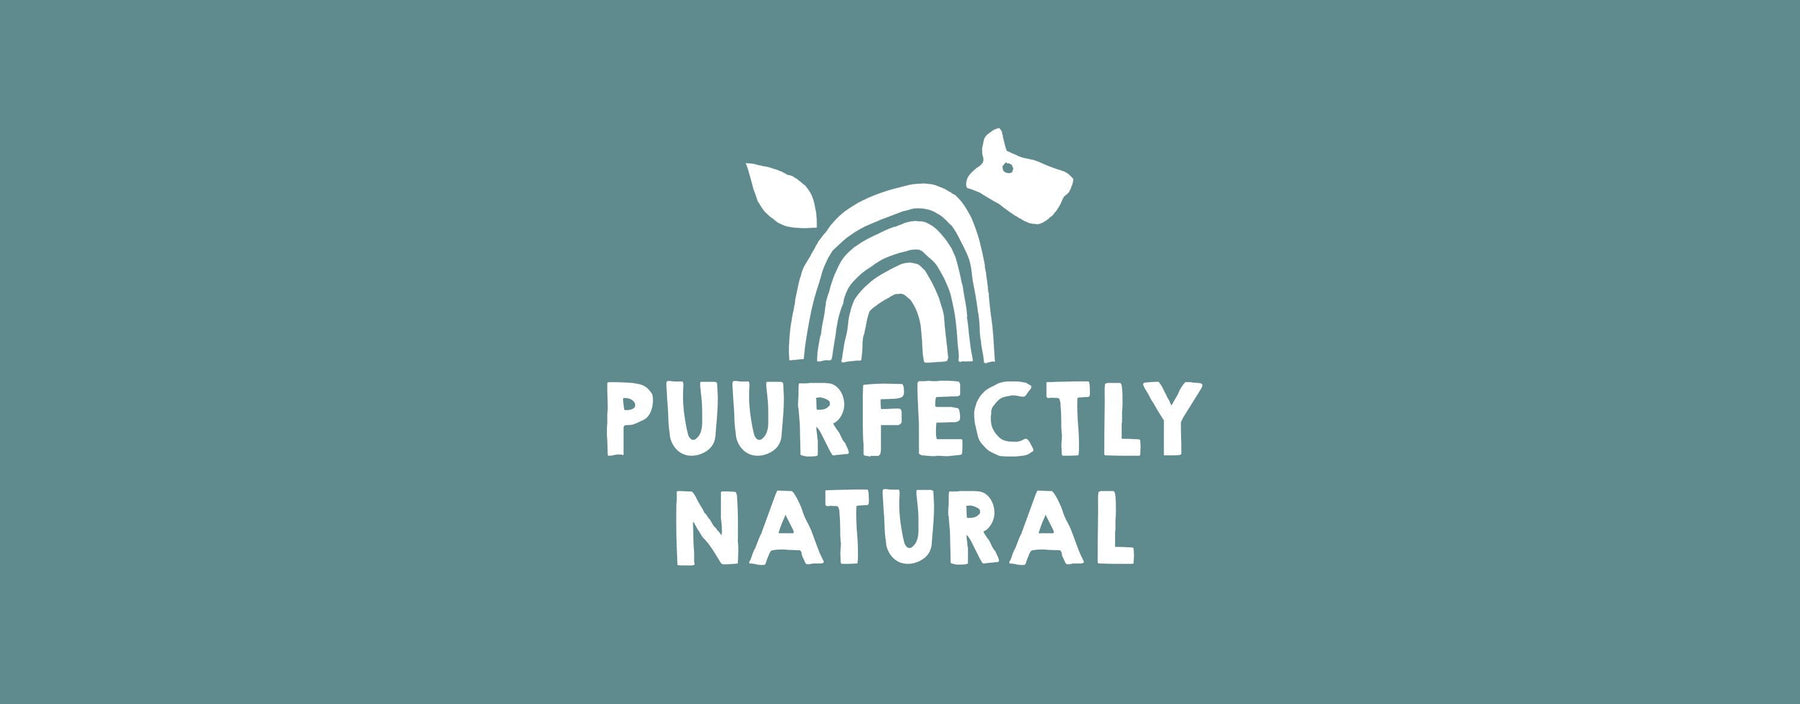 Puurfectly Natural